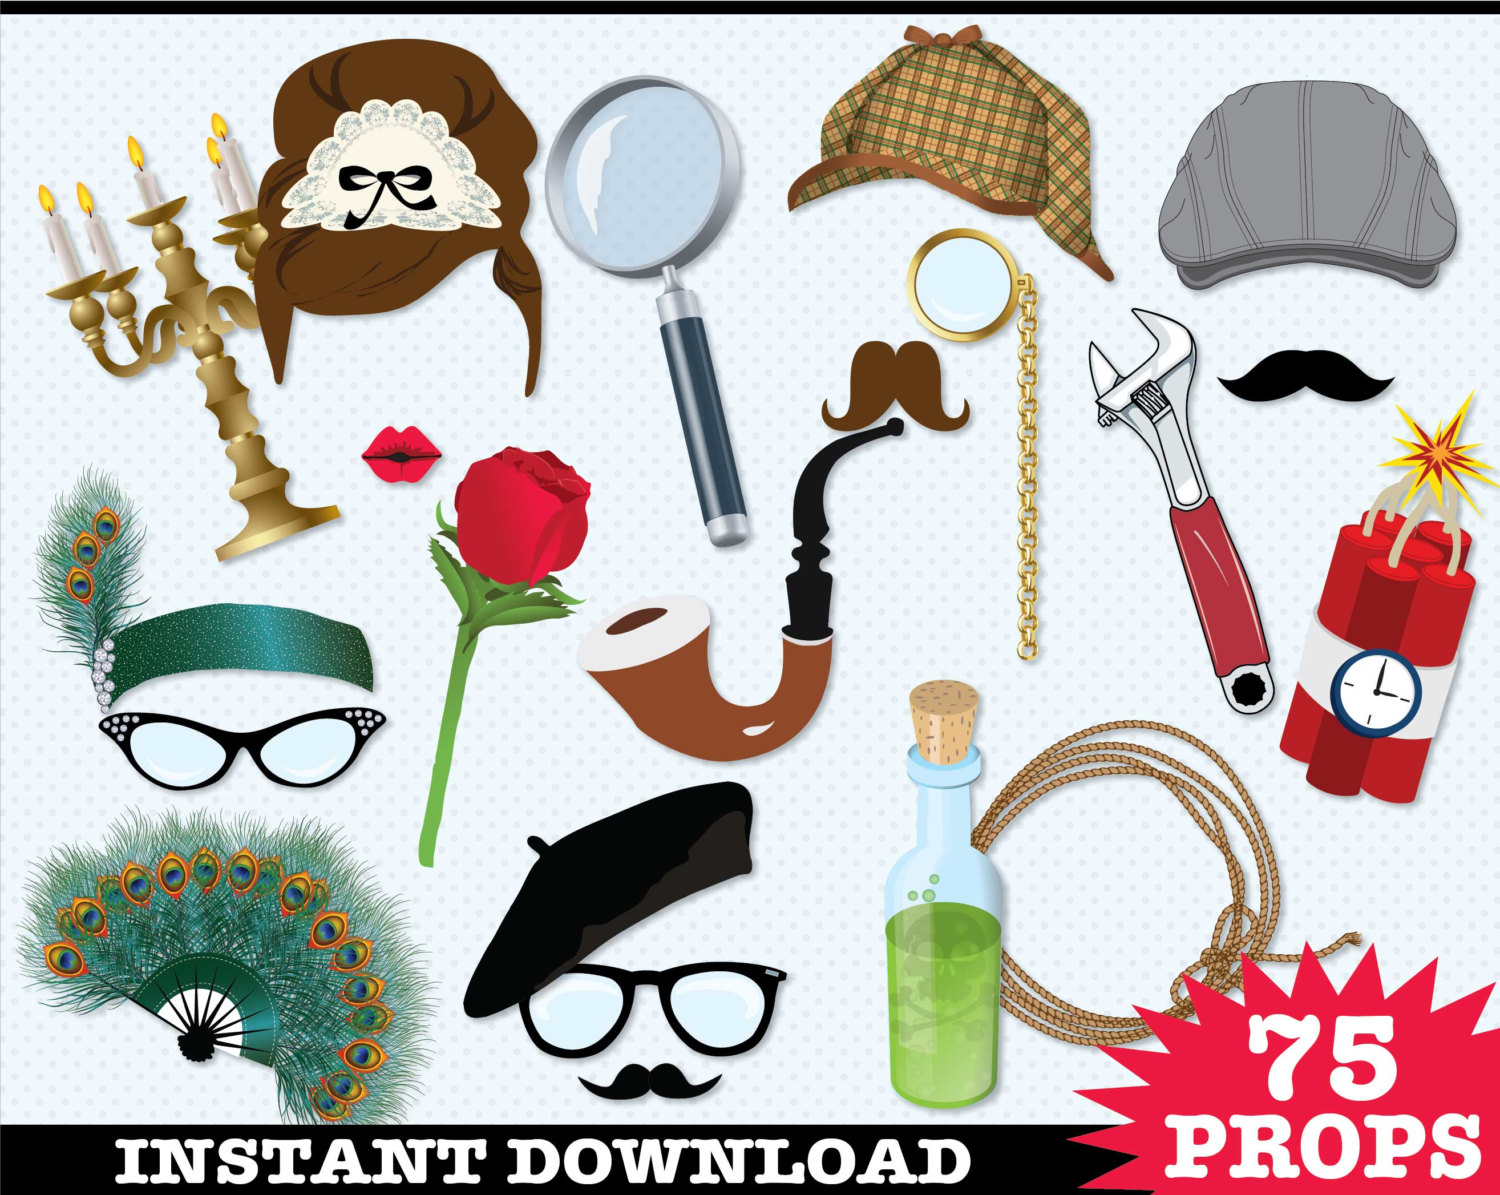 Murder mystery photo booth. Cap clipart detective